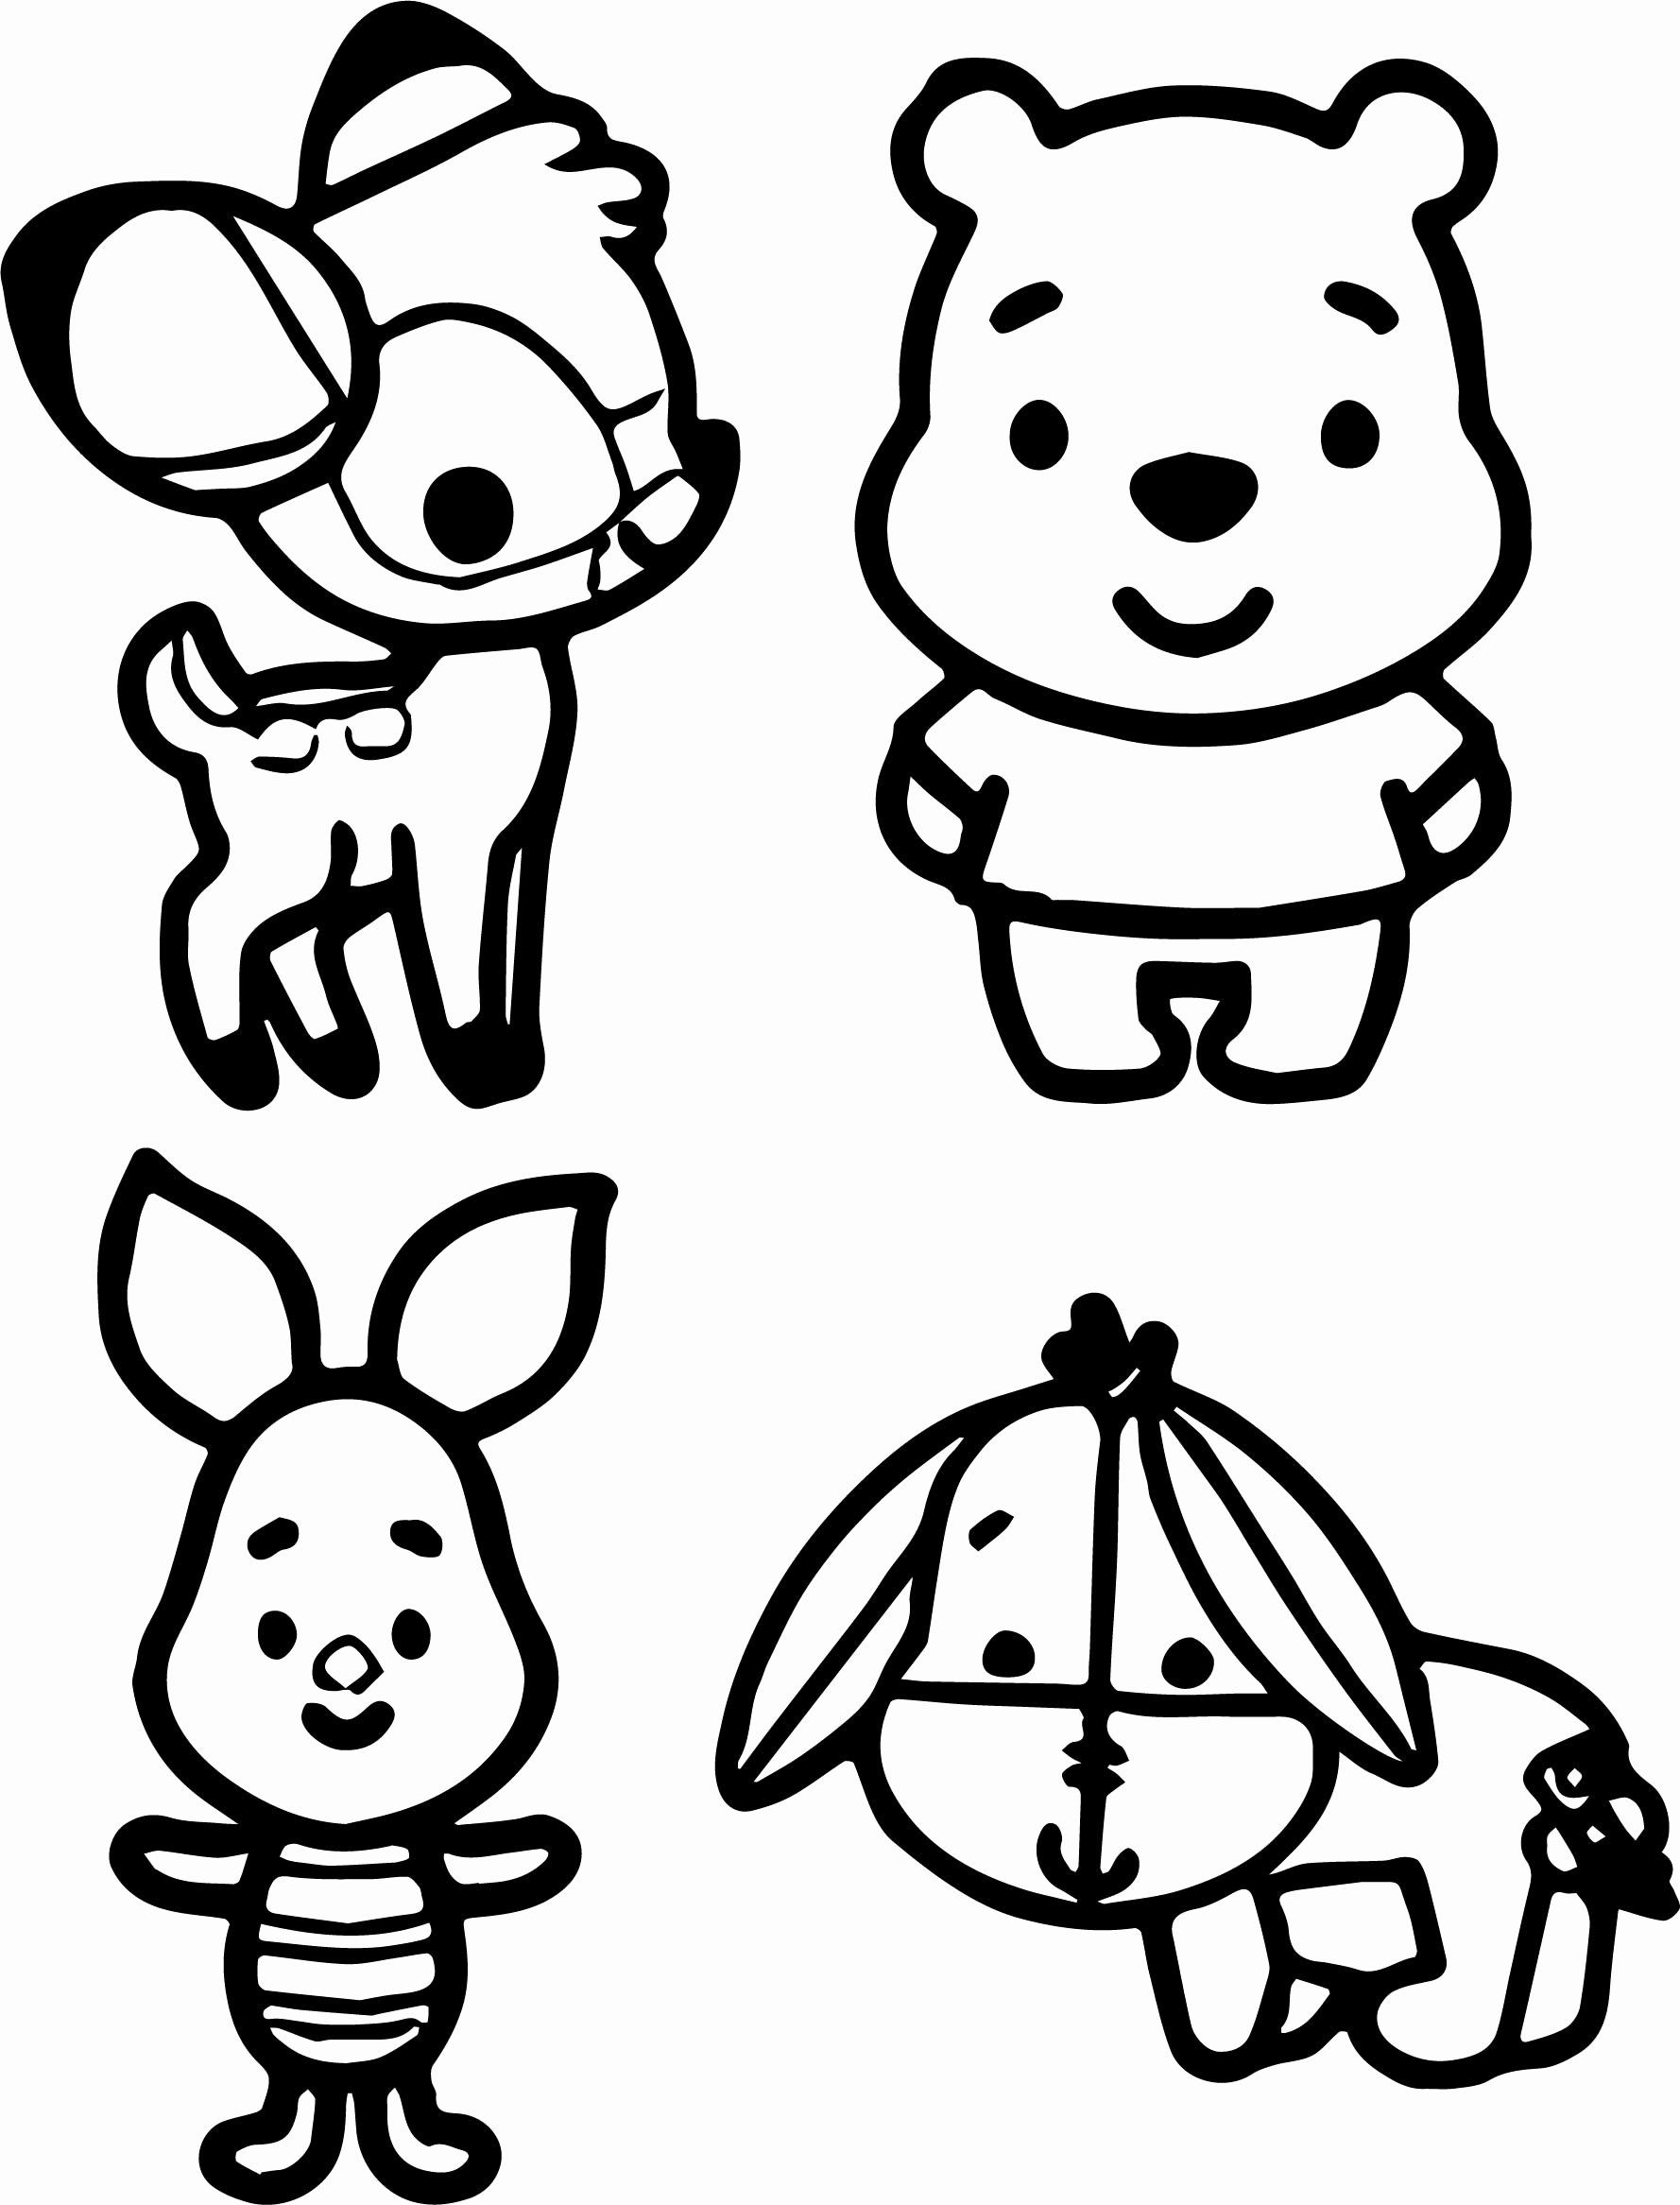 Disney Baby Coloring Pages Viati Coloring In 2020 Winnie The Pooh Drawing Baby Coloring Pages Disney Coloring Pages